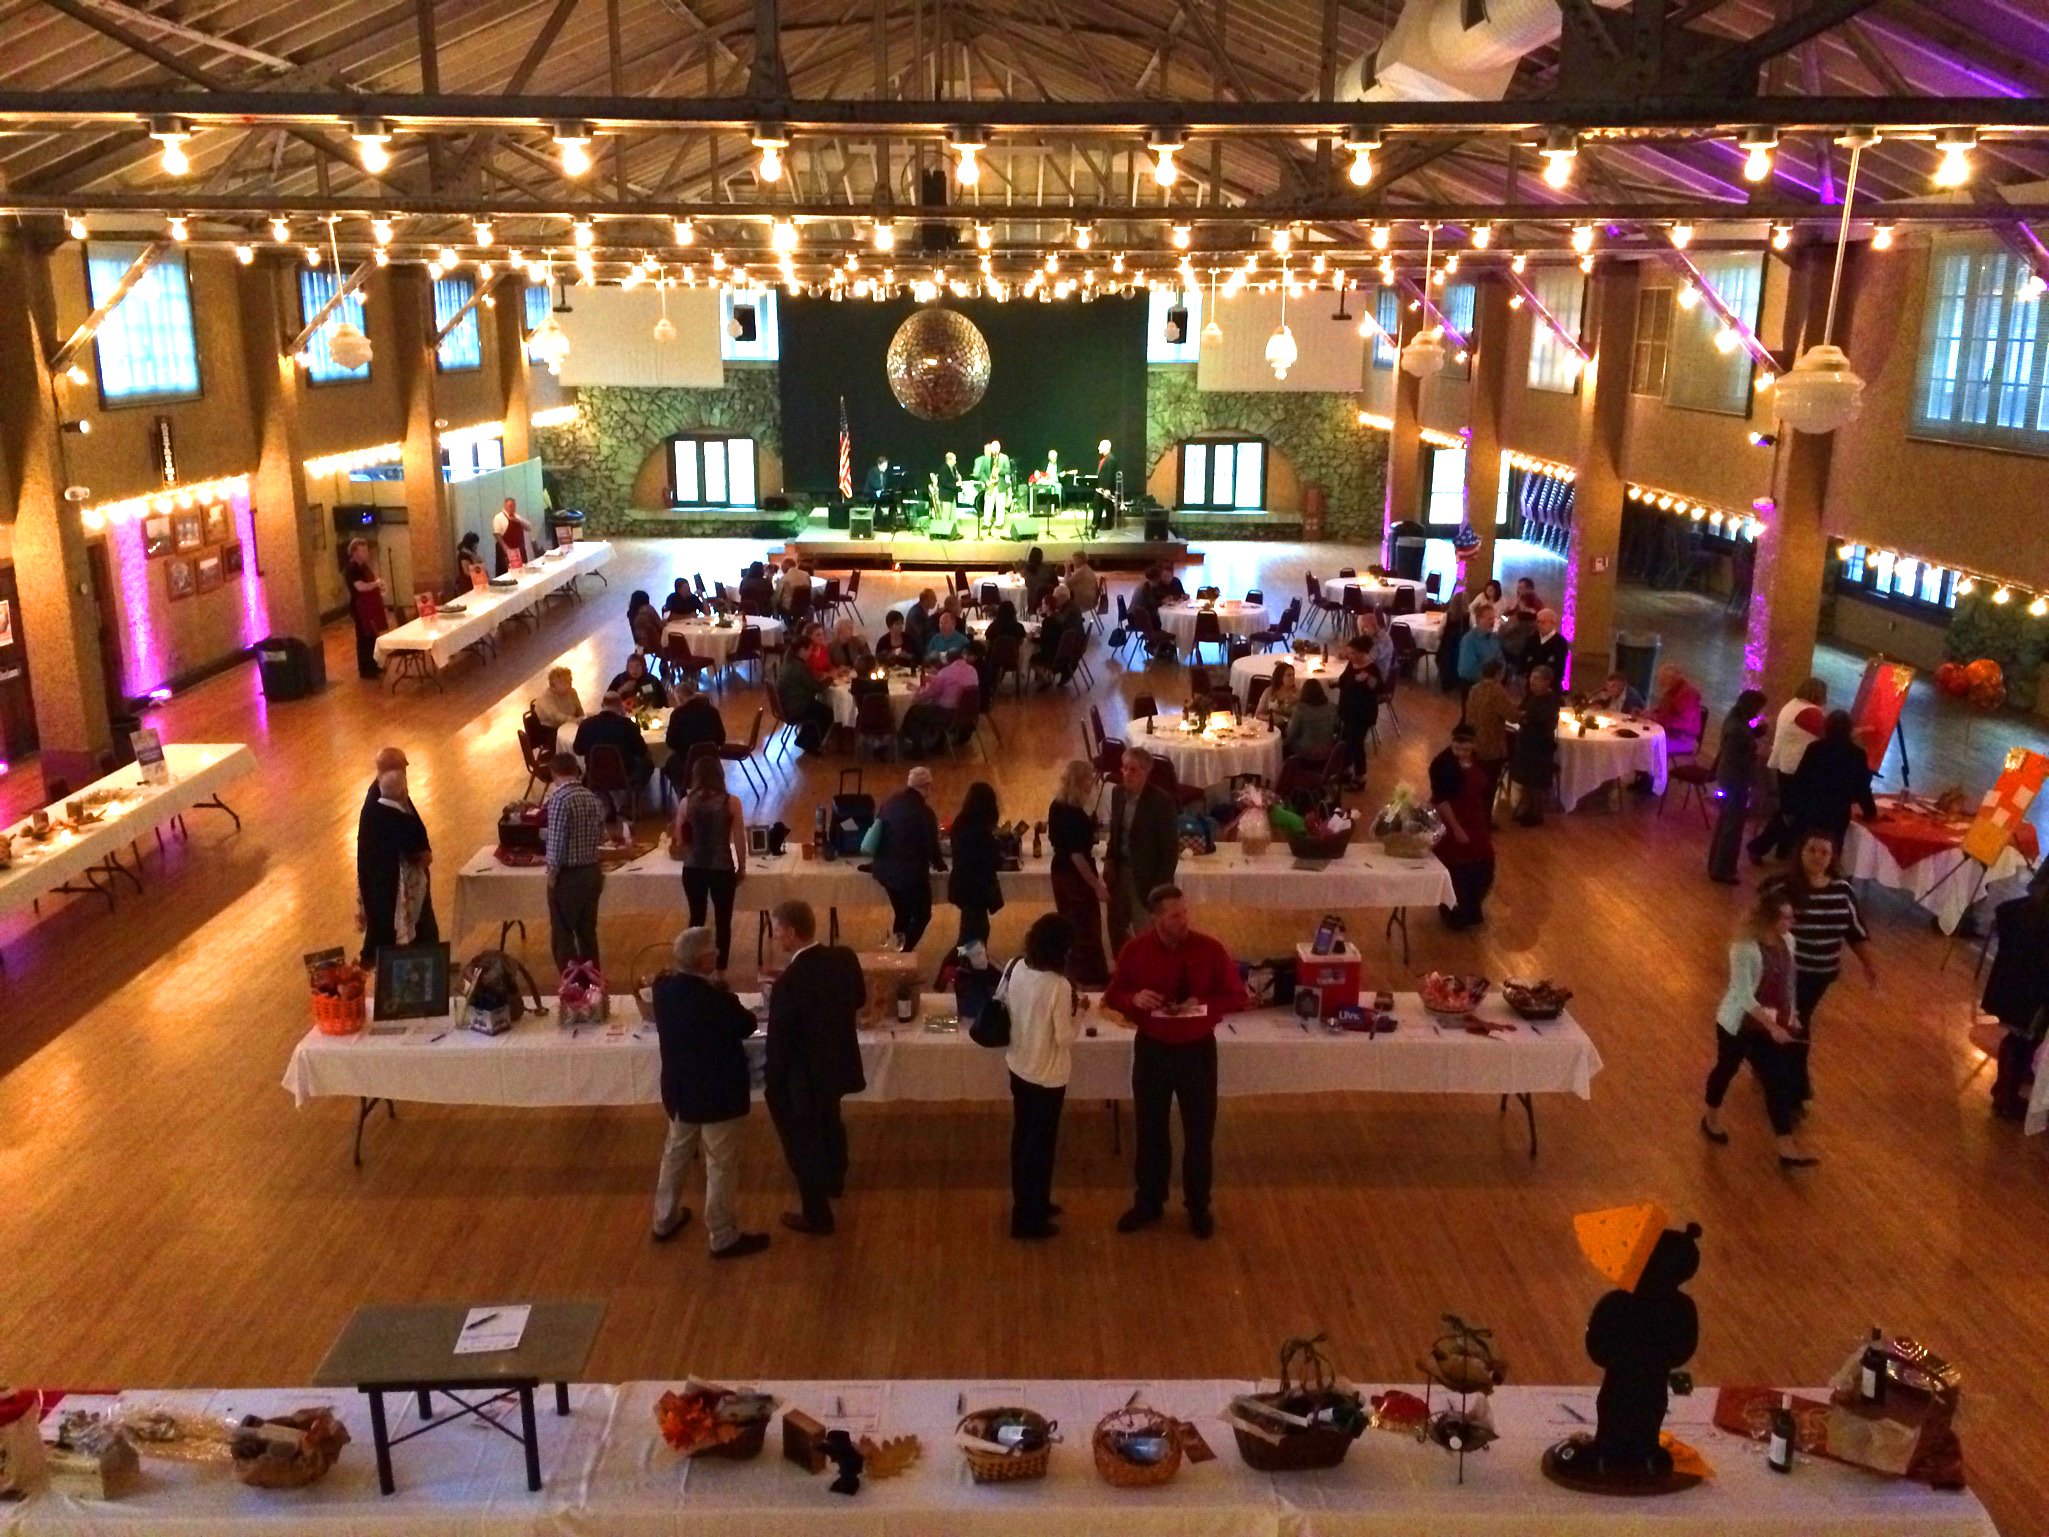 aerial view of a indoor function